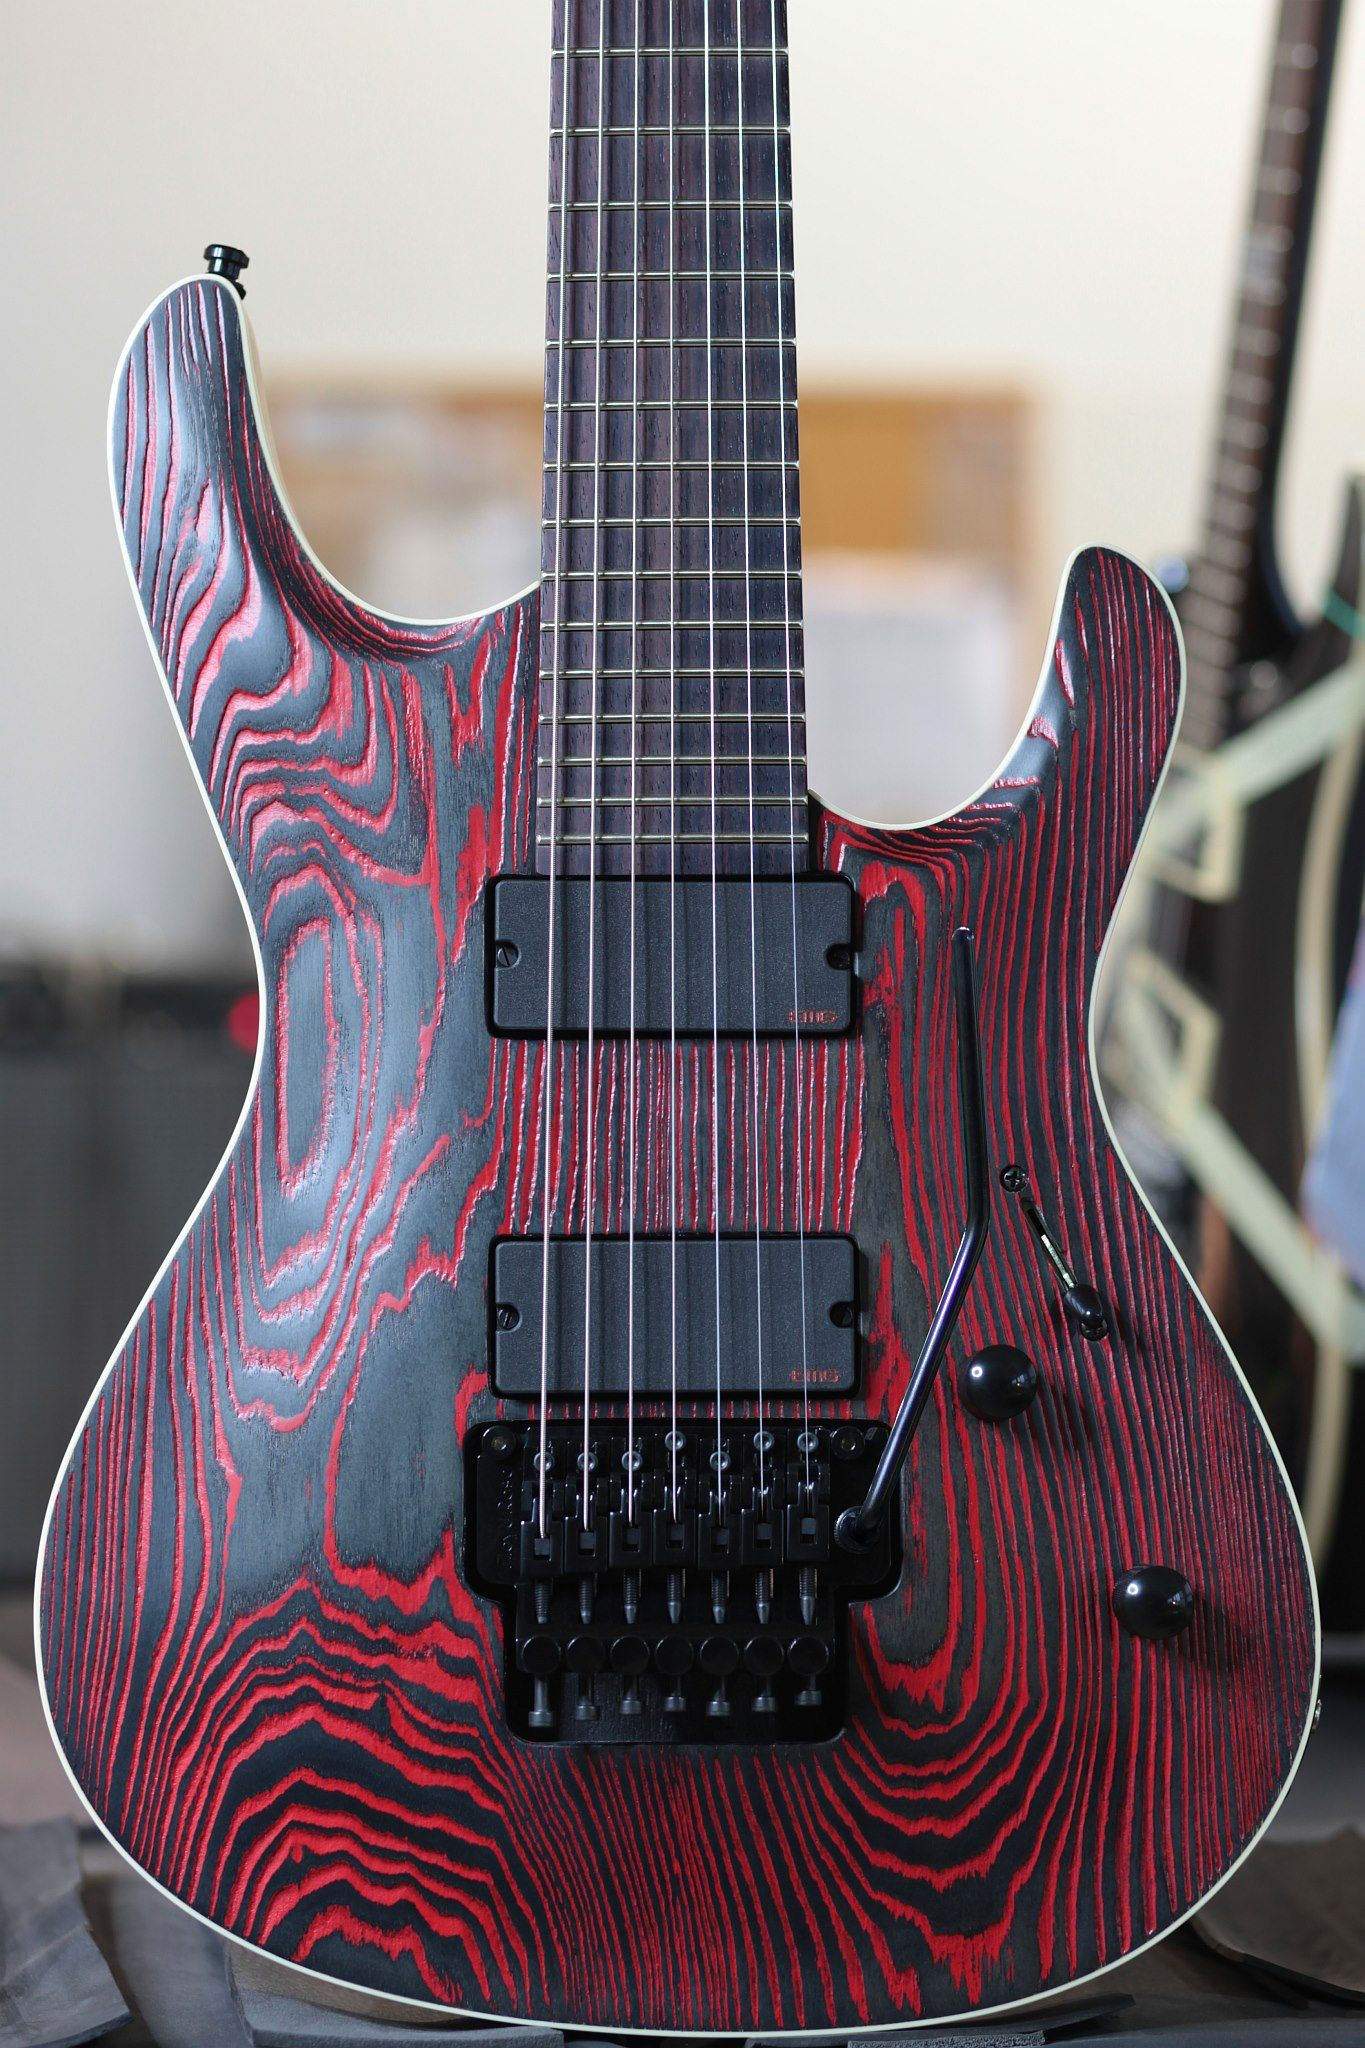 Bulb s Mayones Regius one day i ll this one i really love it with its natural finish Beautiful Guitars Pinterest